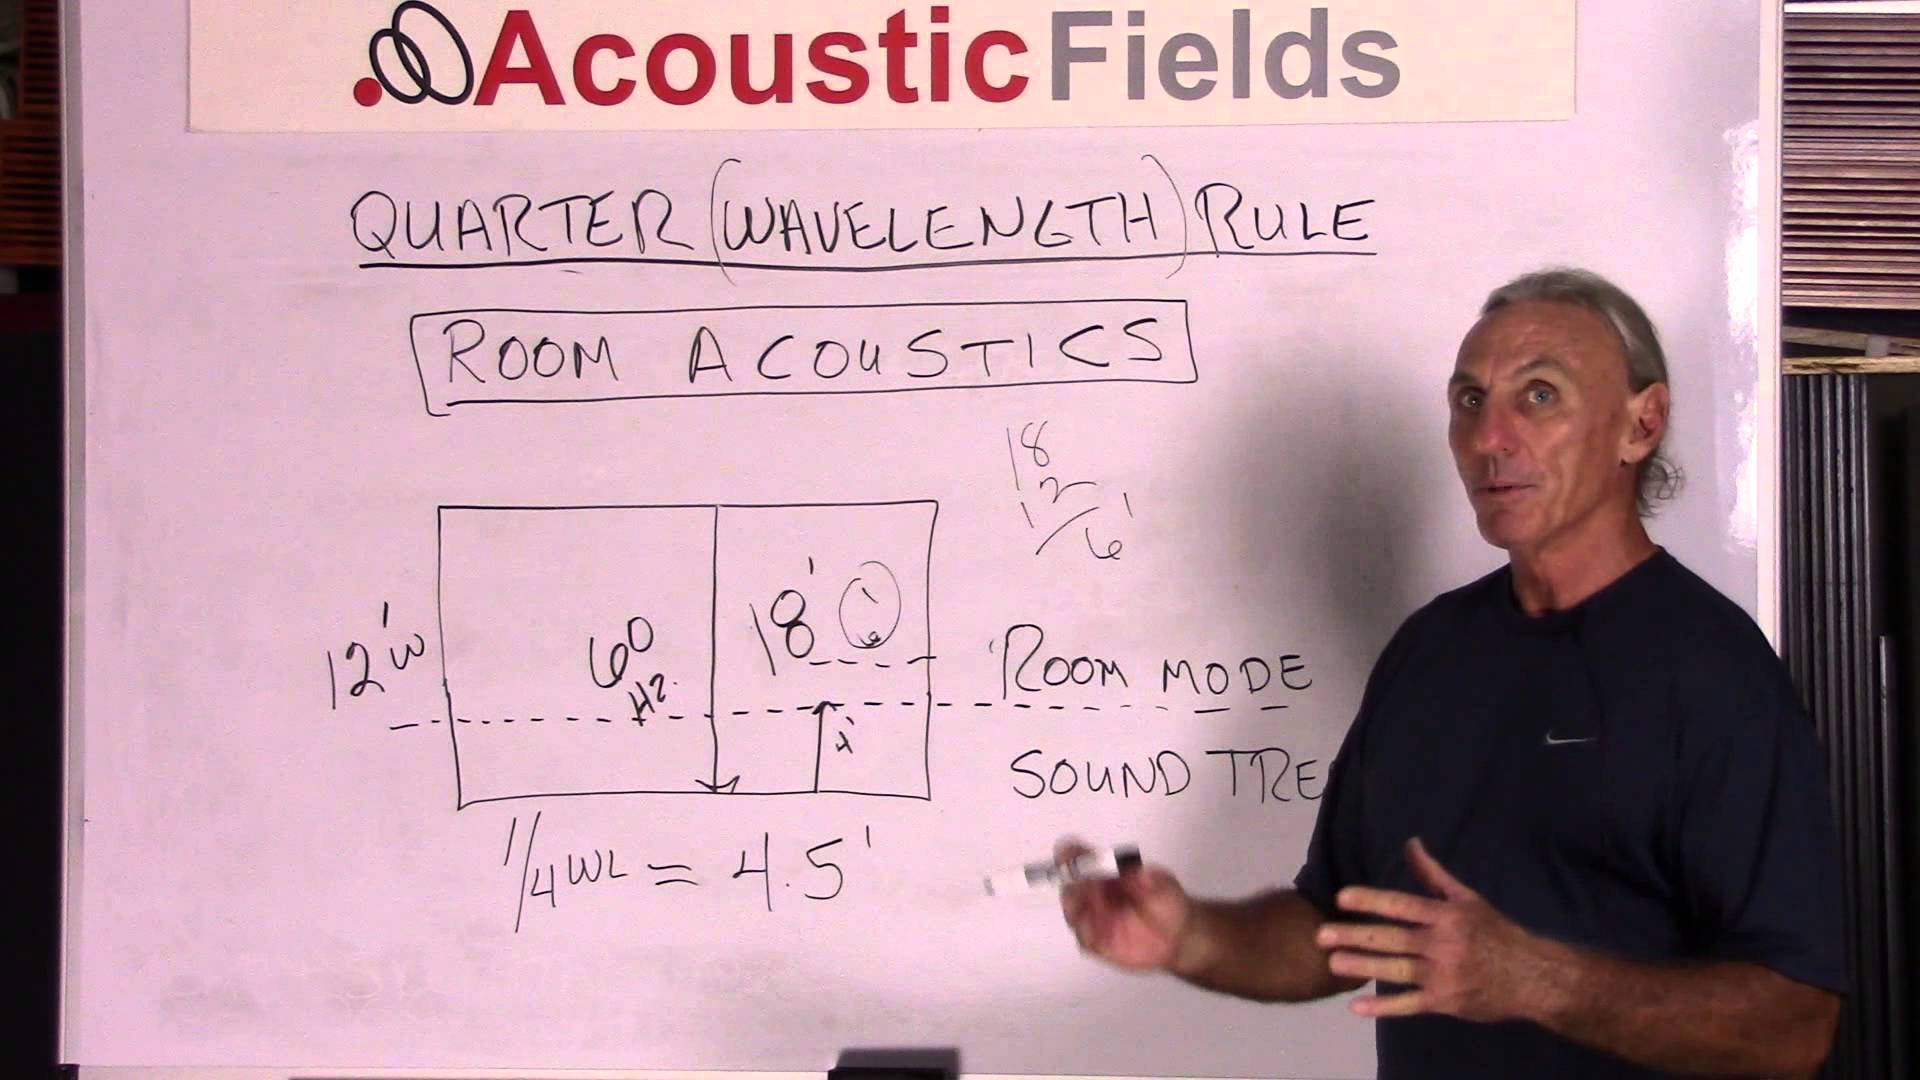 The quarter wavelength rule and how it applies to room acoustics